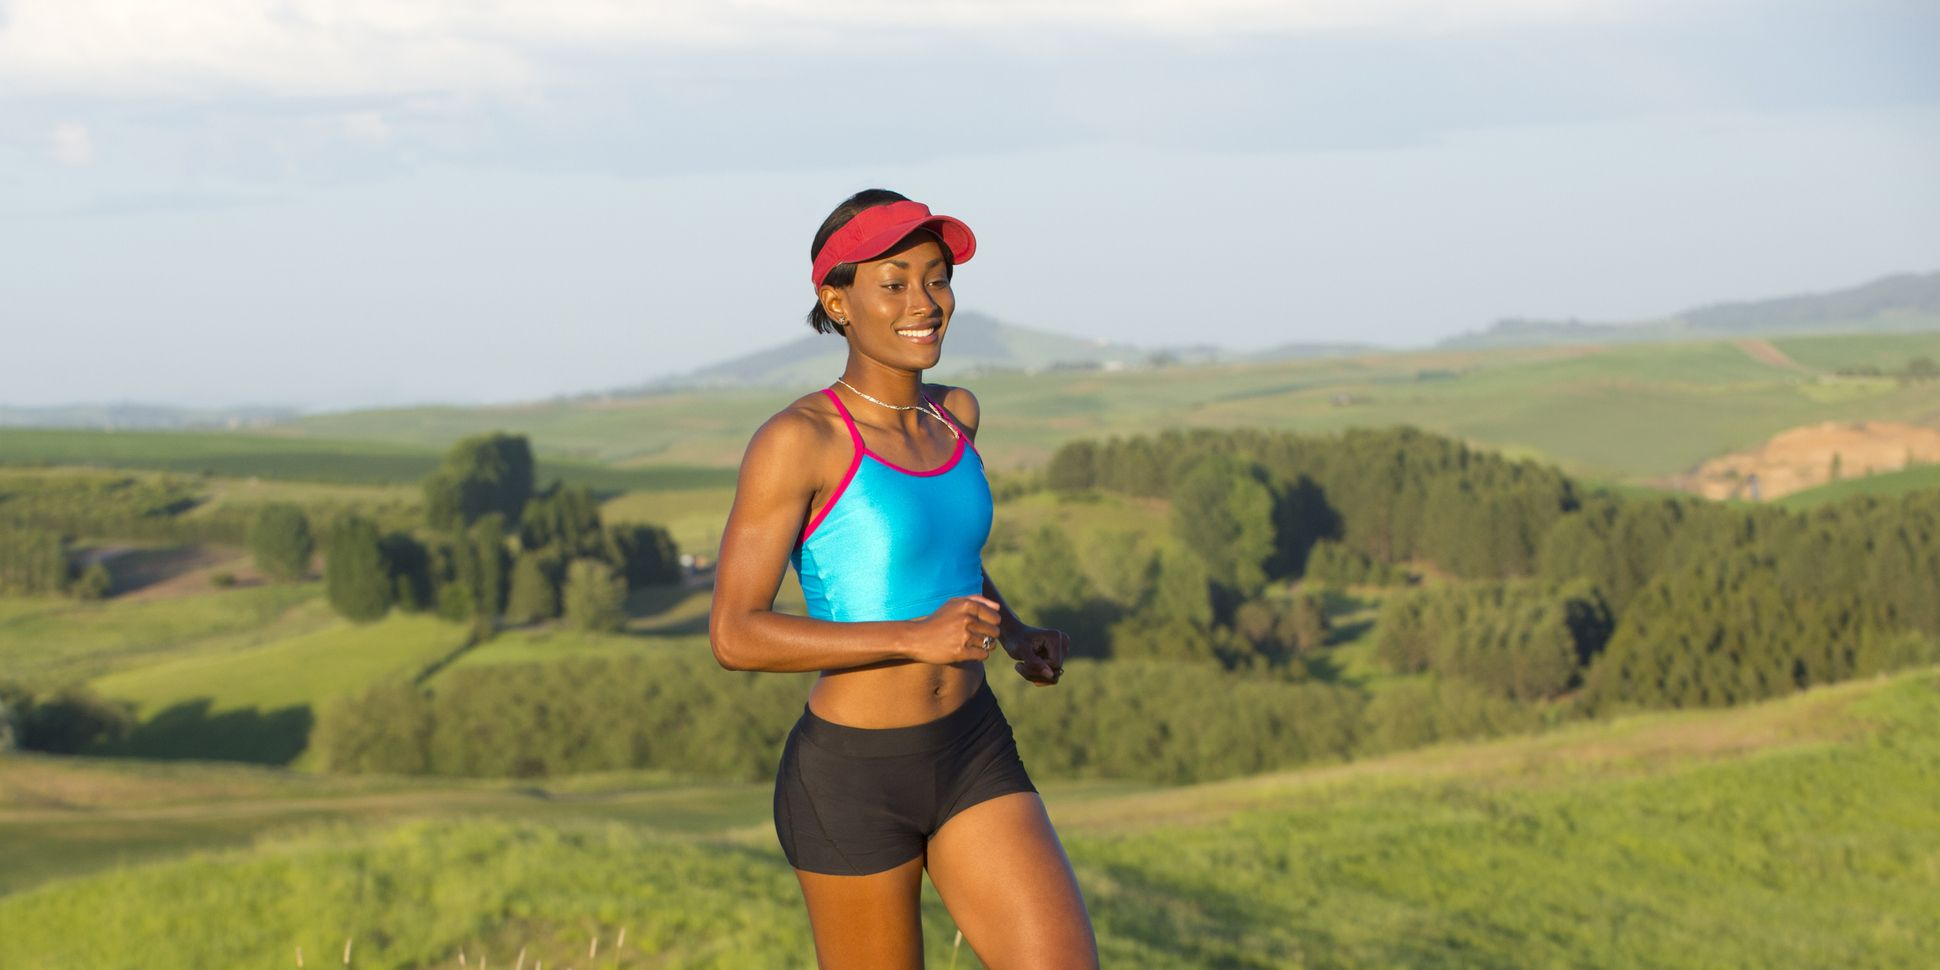 Young woman running in landscape, Othello, Washington, USA